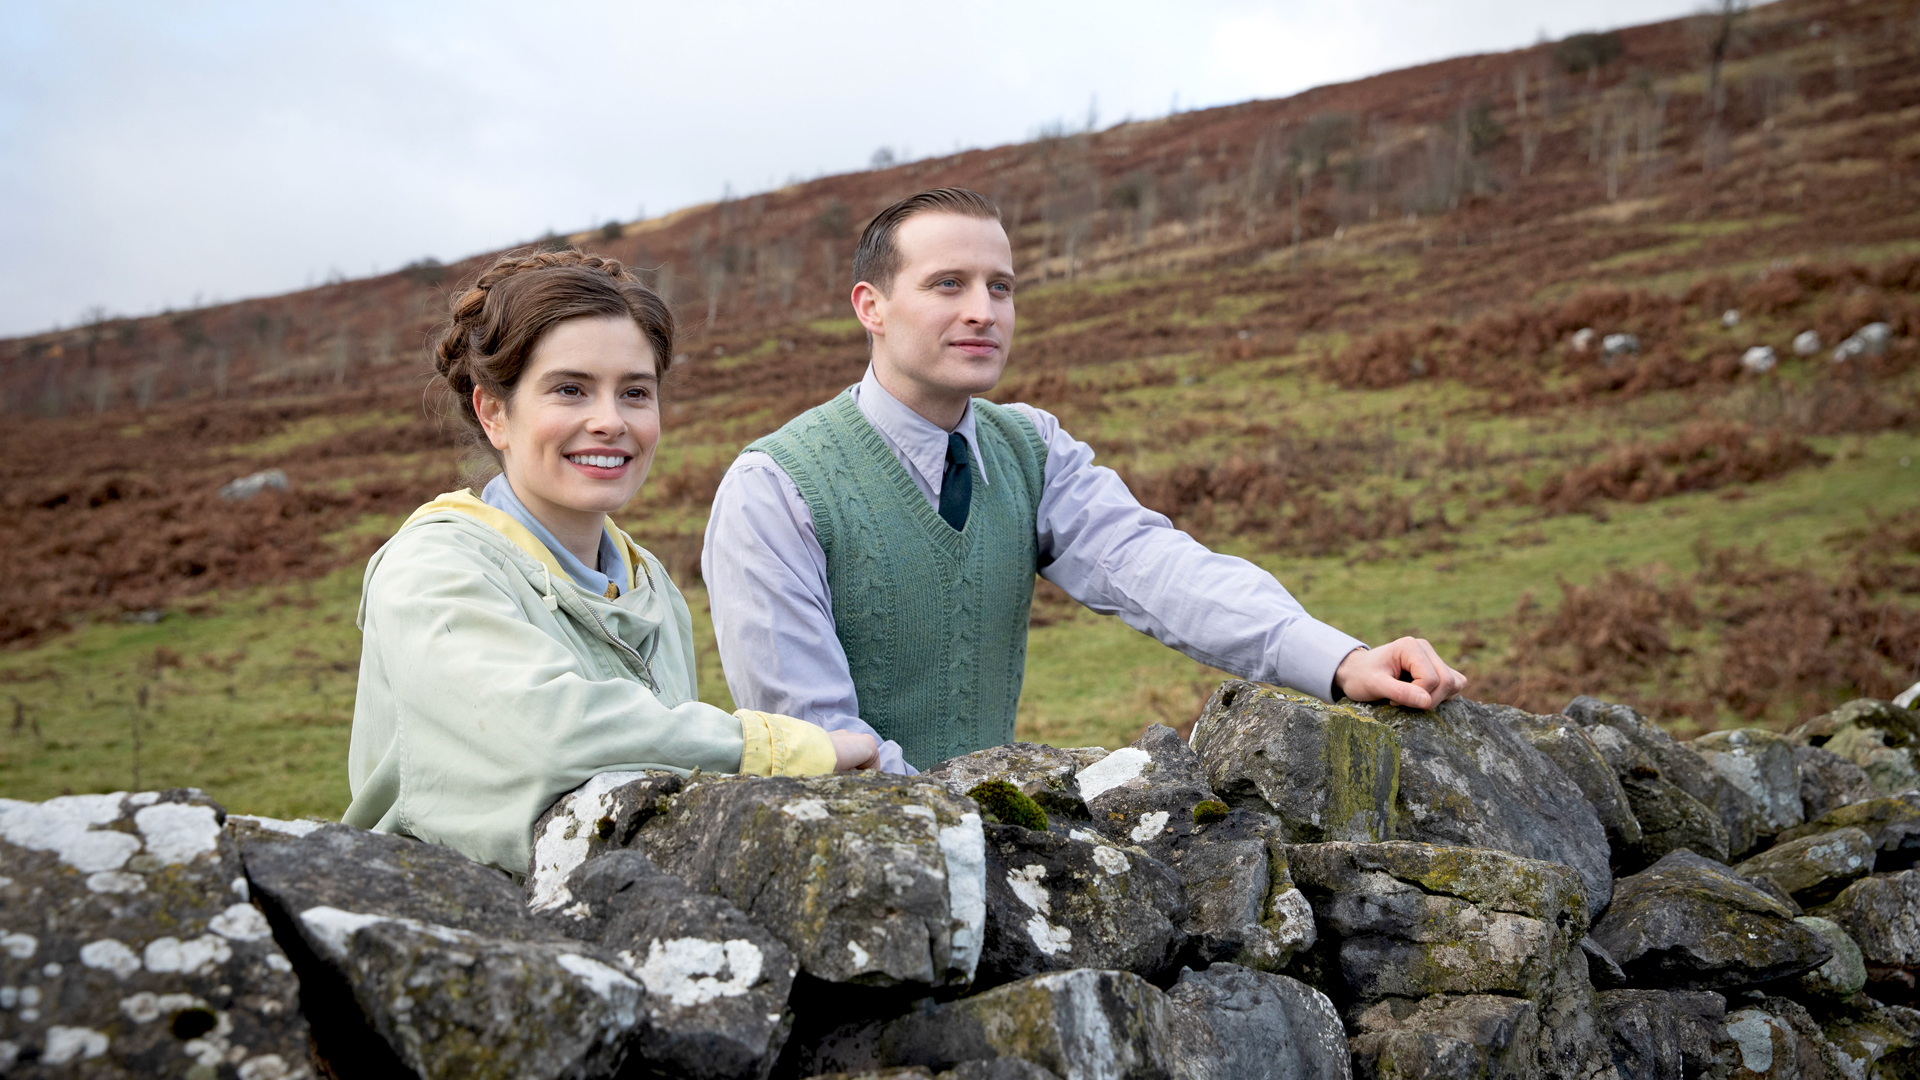 Rachel Shenton and Nicholas Ralph in All Creatures Great and Small on MASTERPIECE on PBS